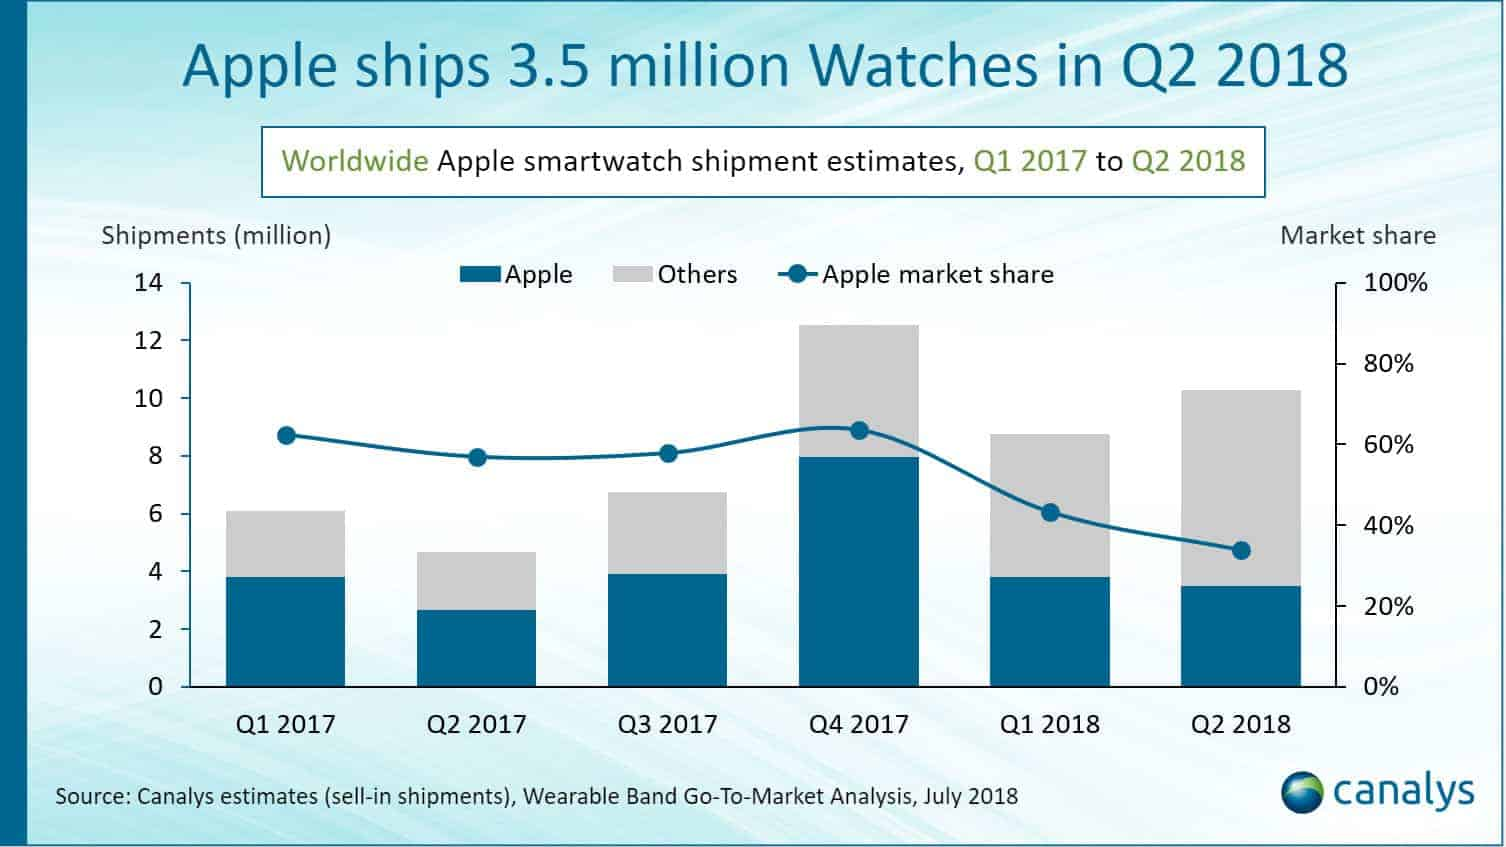 Apple ships 3.5 million Watches in Q2 2018